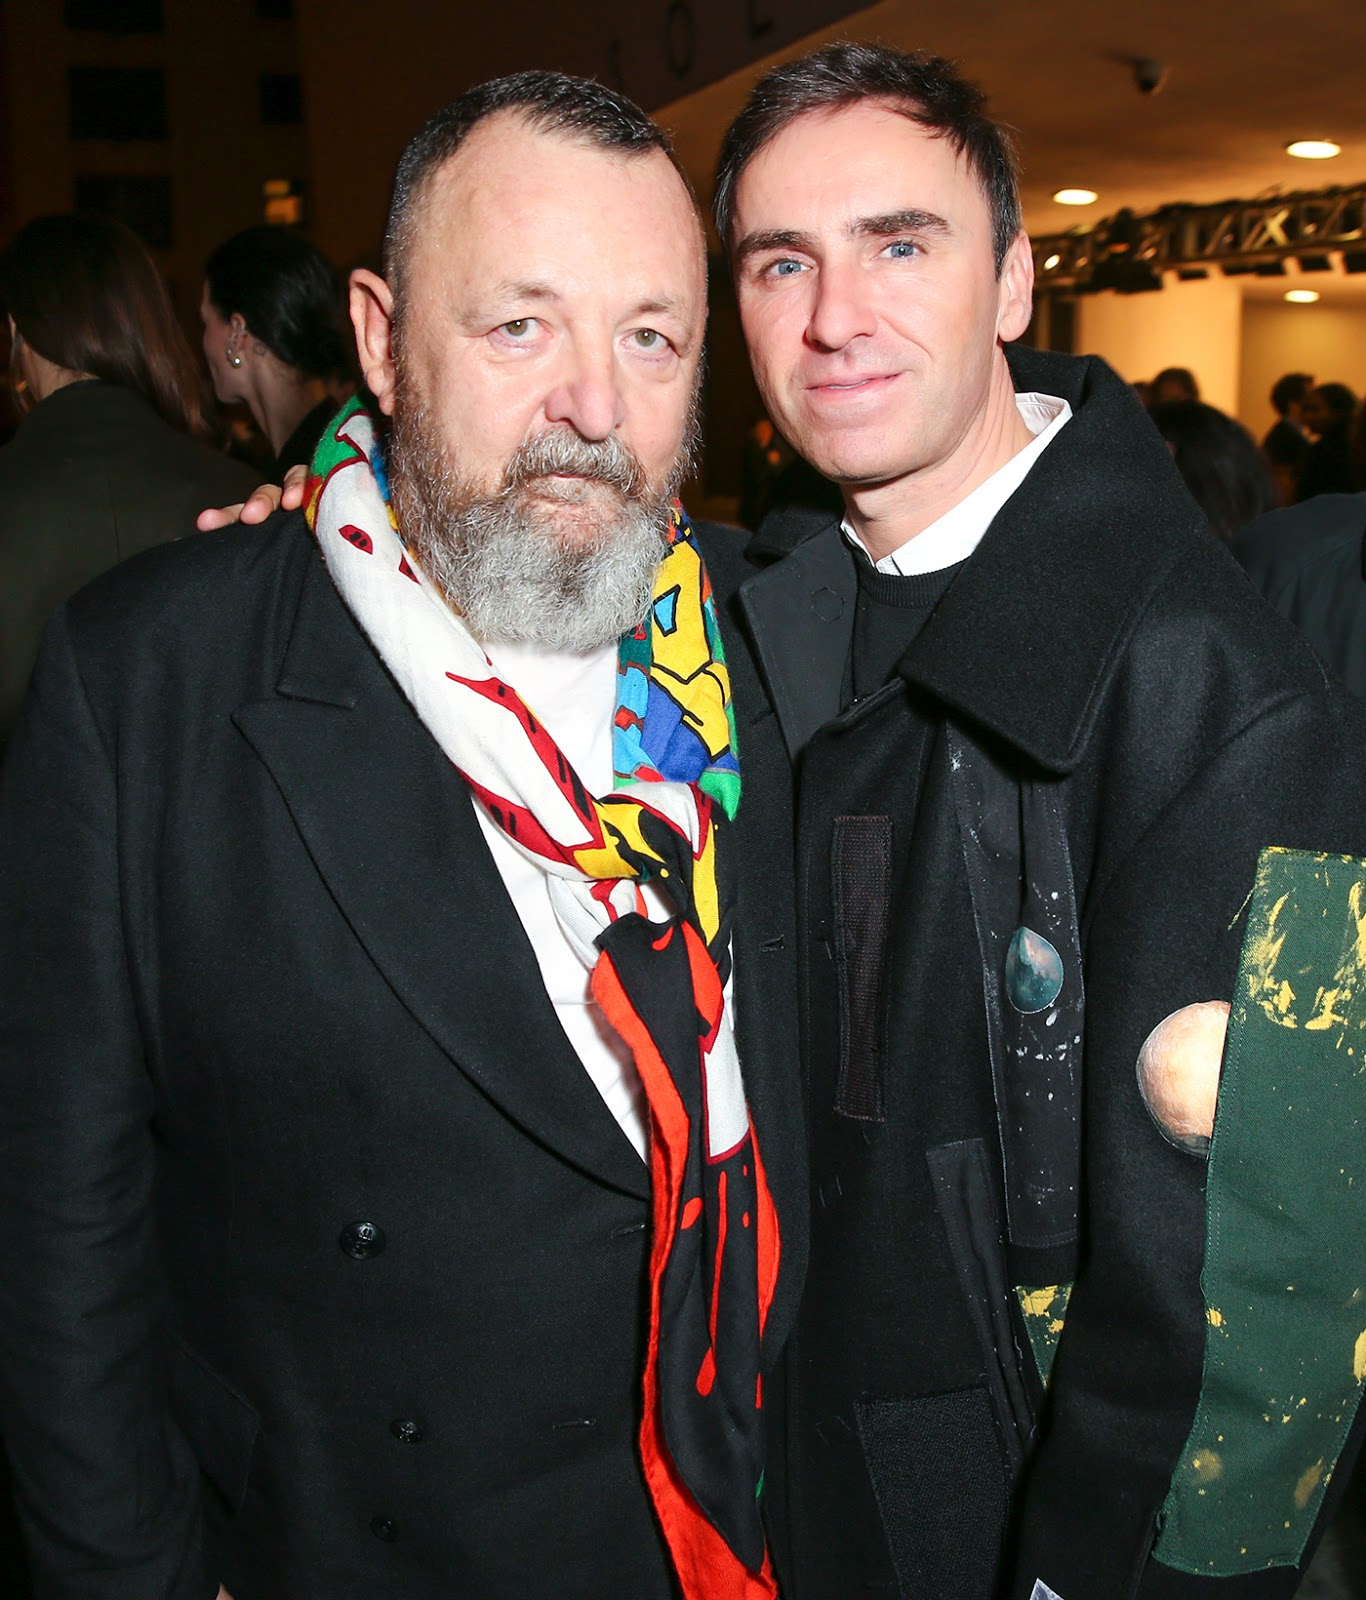 Michel Gaubert and Raf Simons in Raf Simons Sterling Ruby Fall Winter 2014 patchwork coat - After Hours at the Guggenheim With The xx and Dior